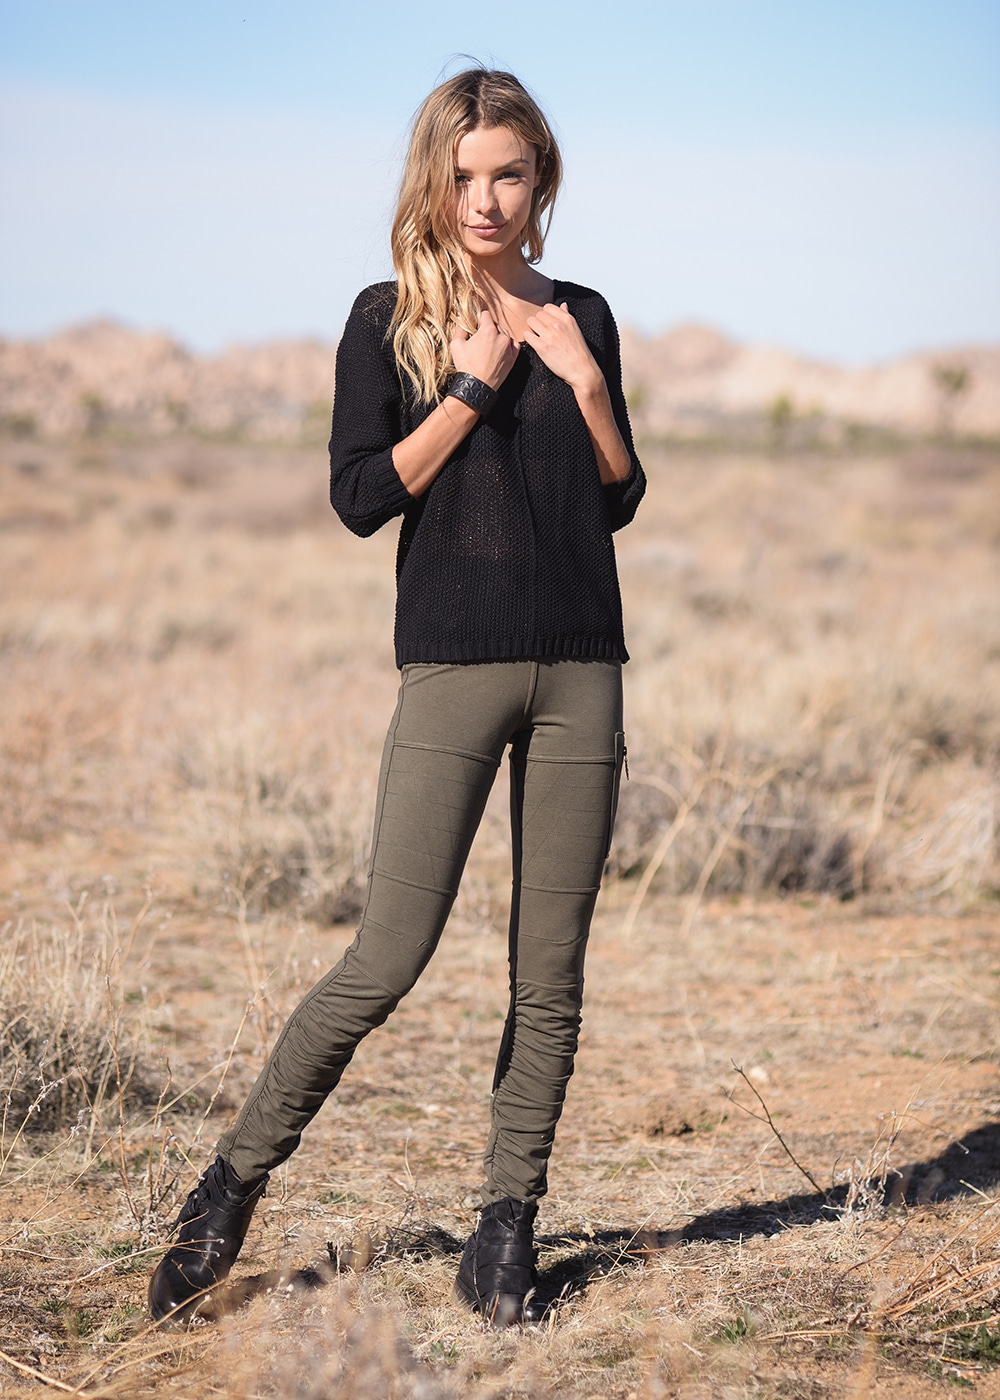 Bamboo and Organic Cotton Drifter Pants in Olive Green by Nomads Hemp Wear Full Body